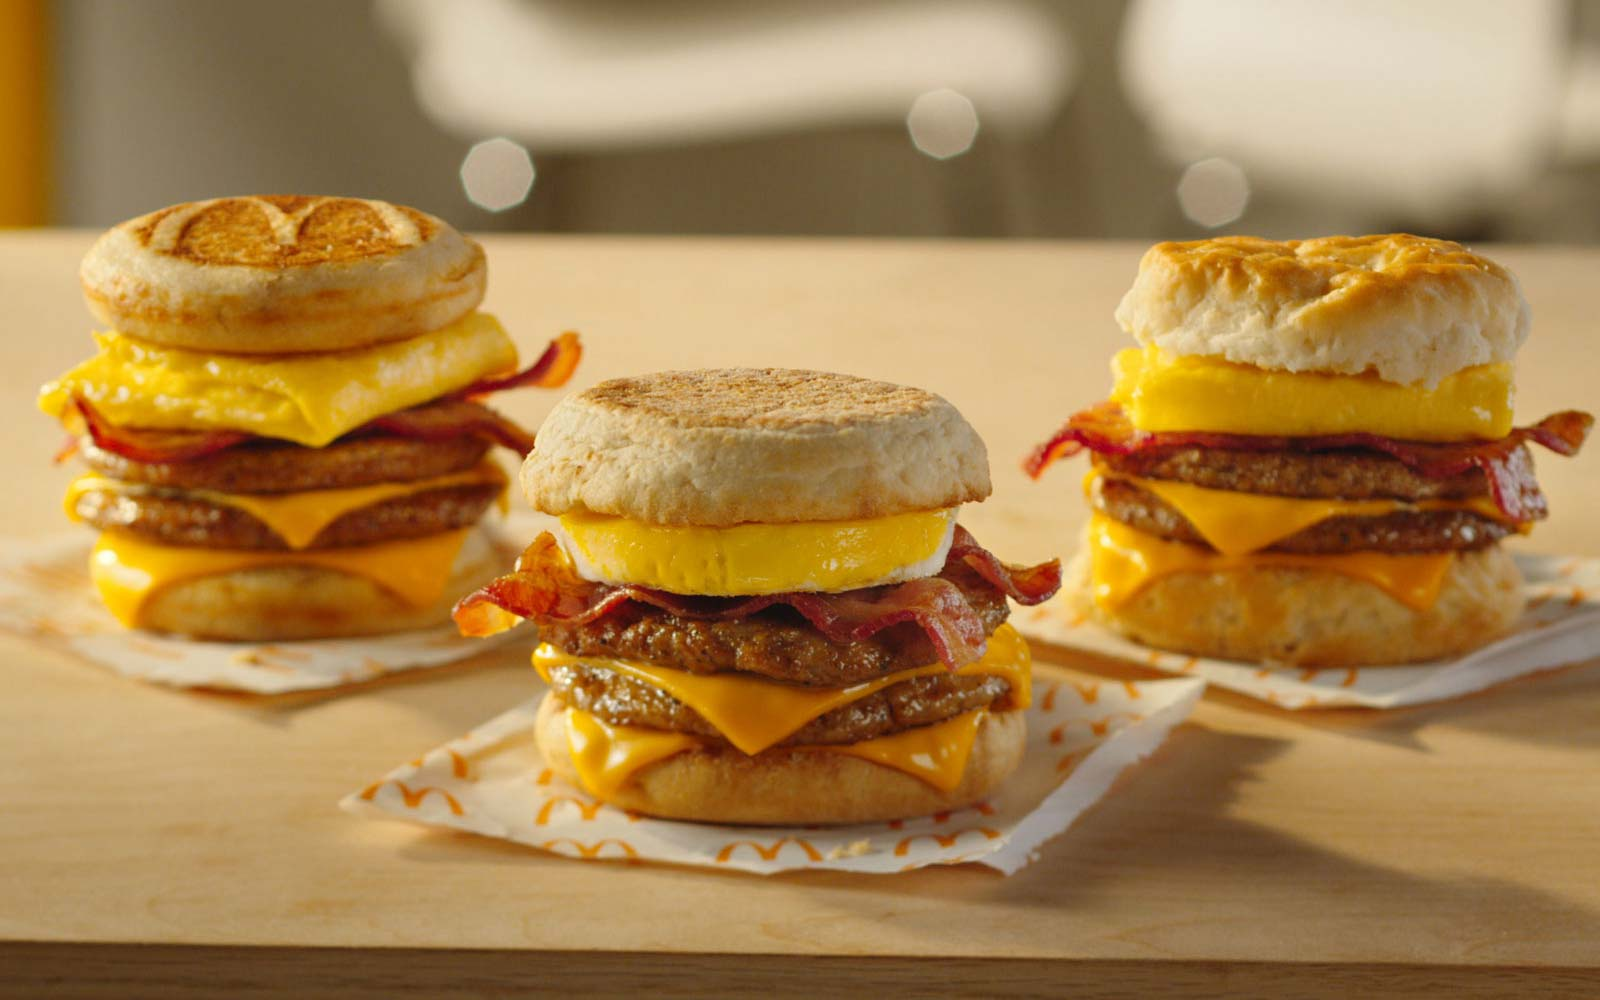 McDonald's Adds First New Breakfast Item in Five Years